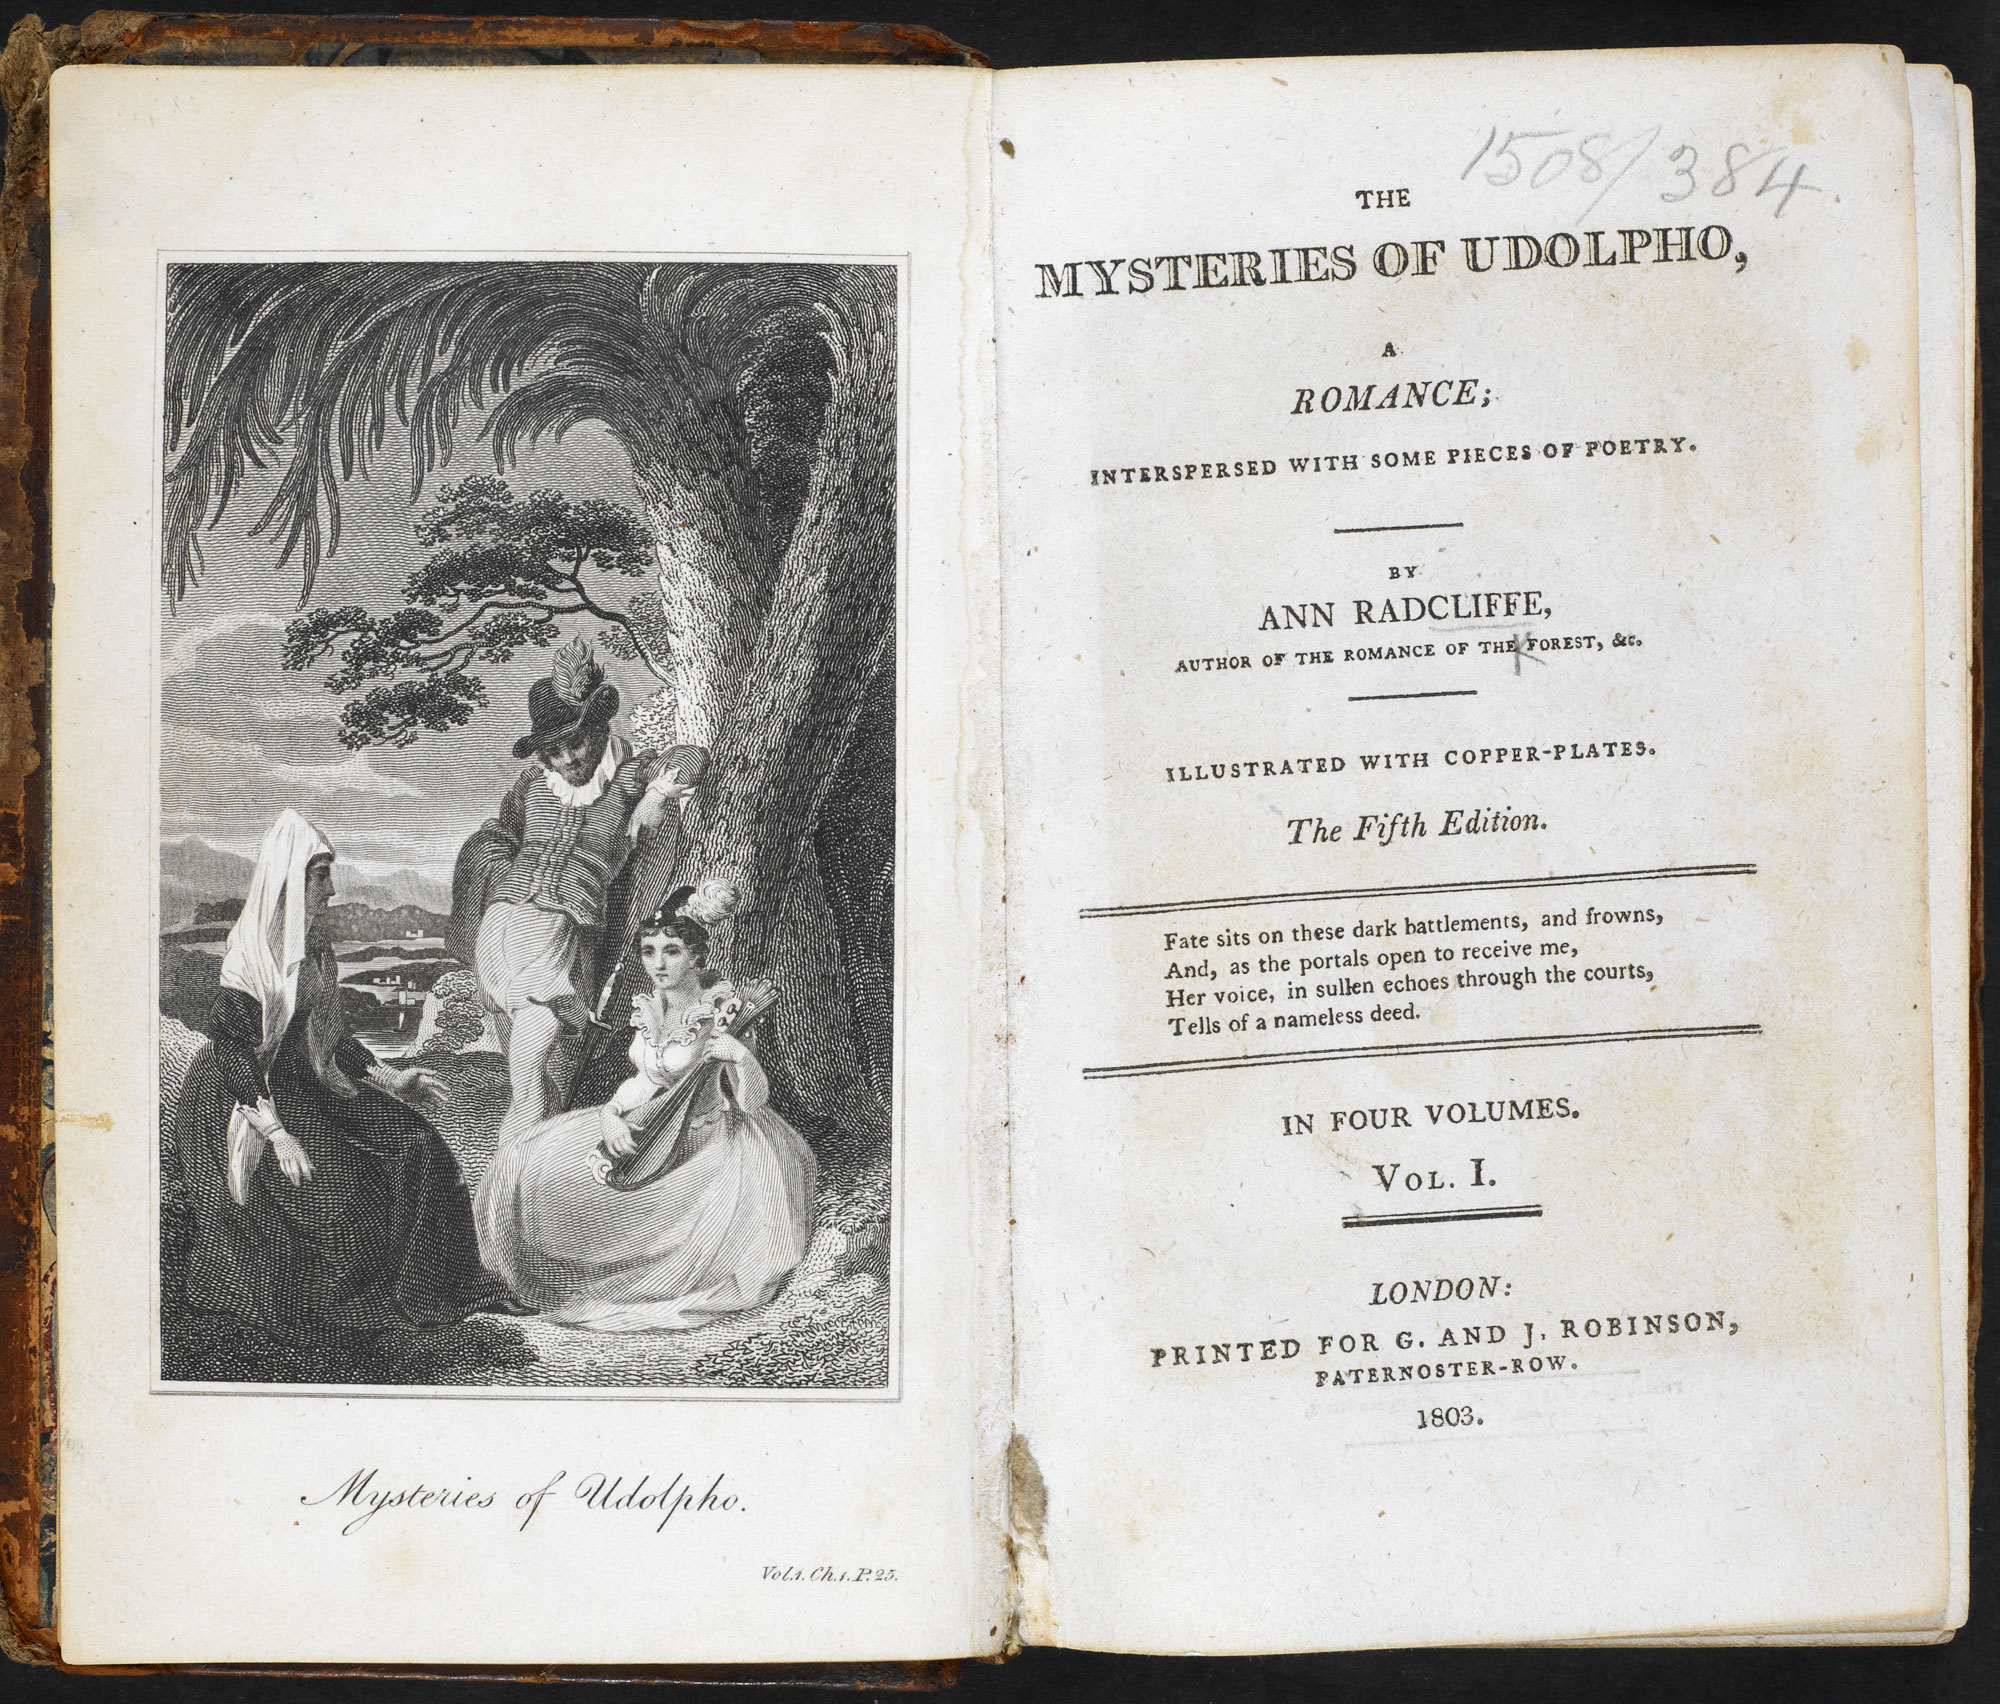 The Mysteries of Udolpho [page: vol. I frontispiece and title page]